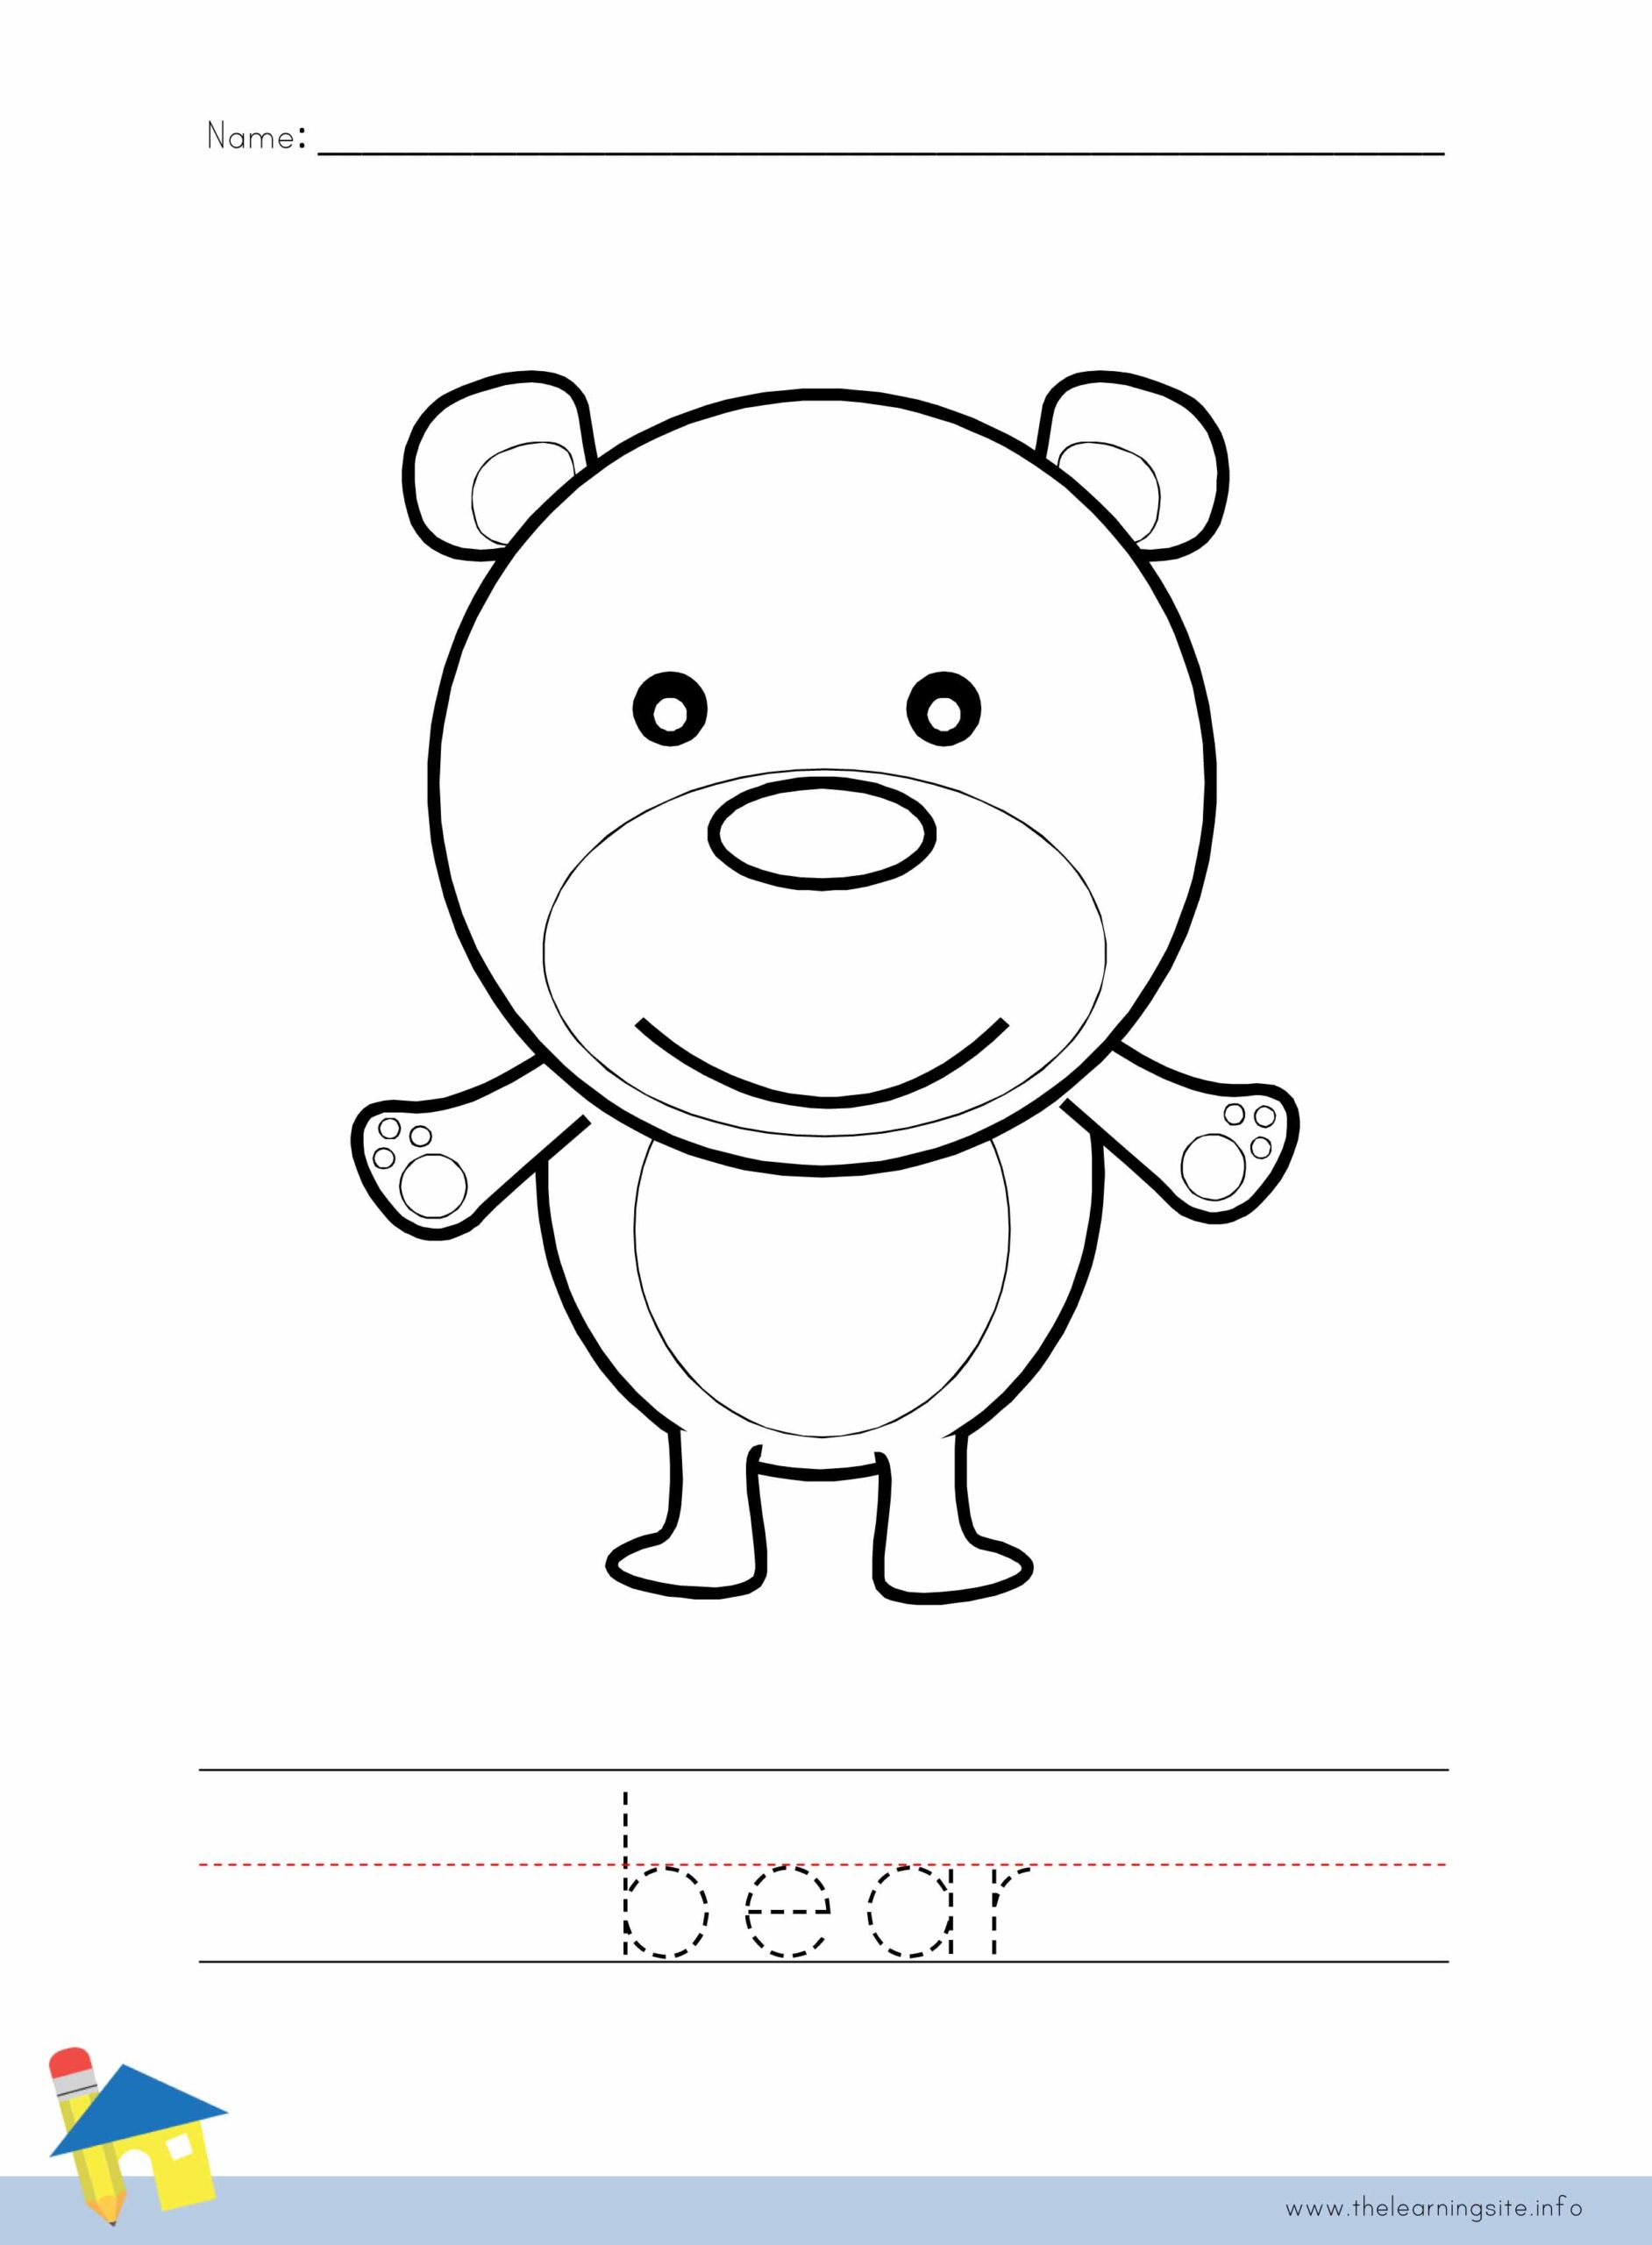 Bear Coloring Worksheet The Learning Site